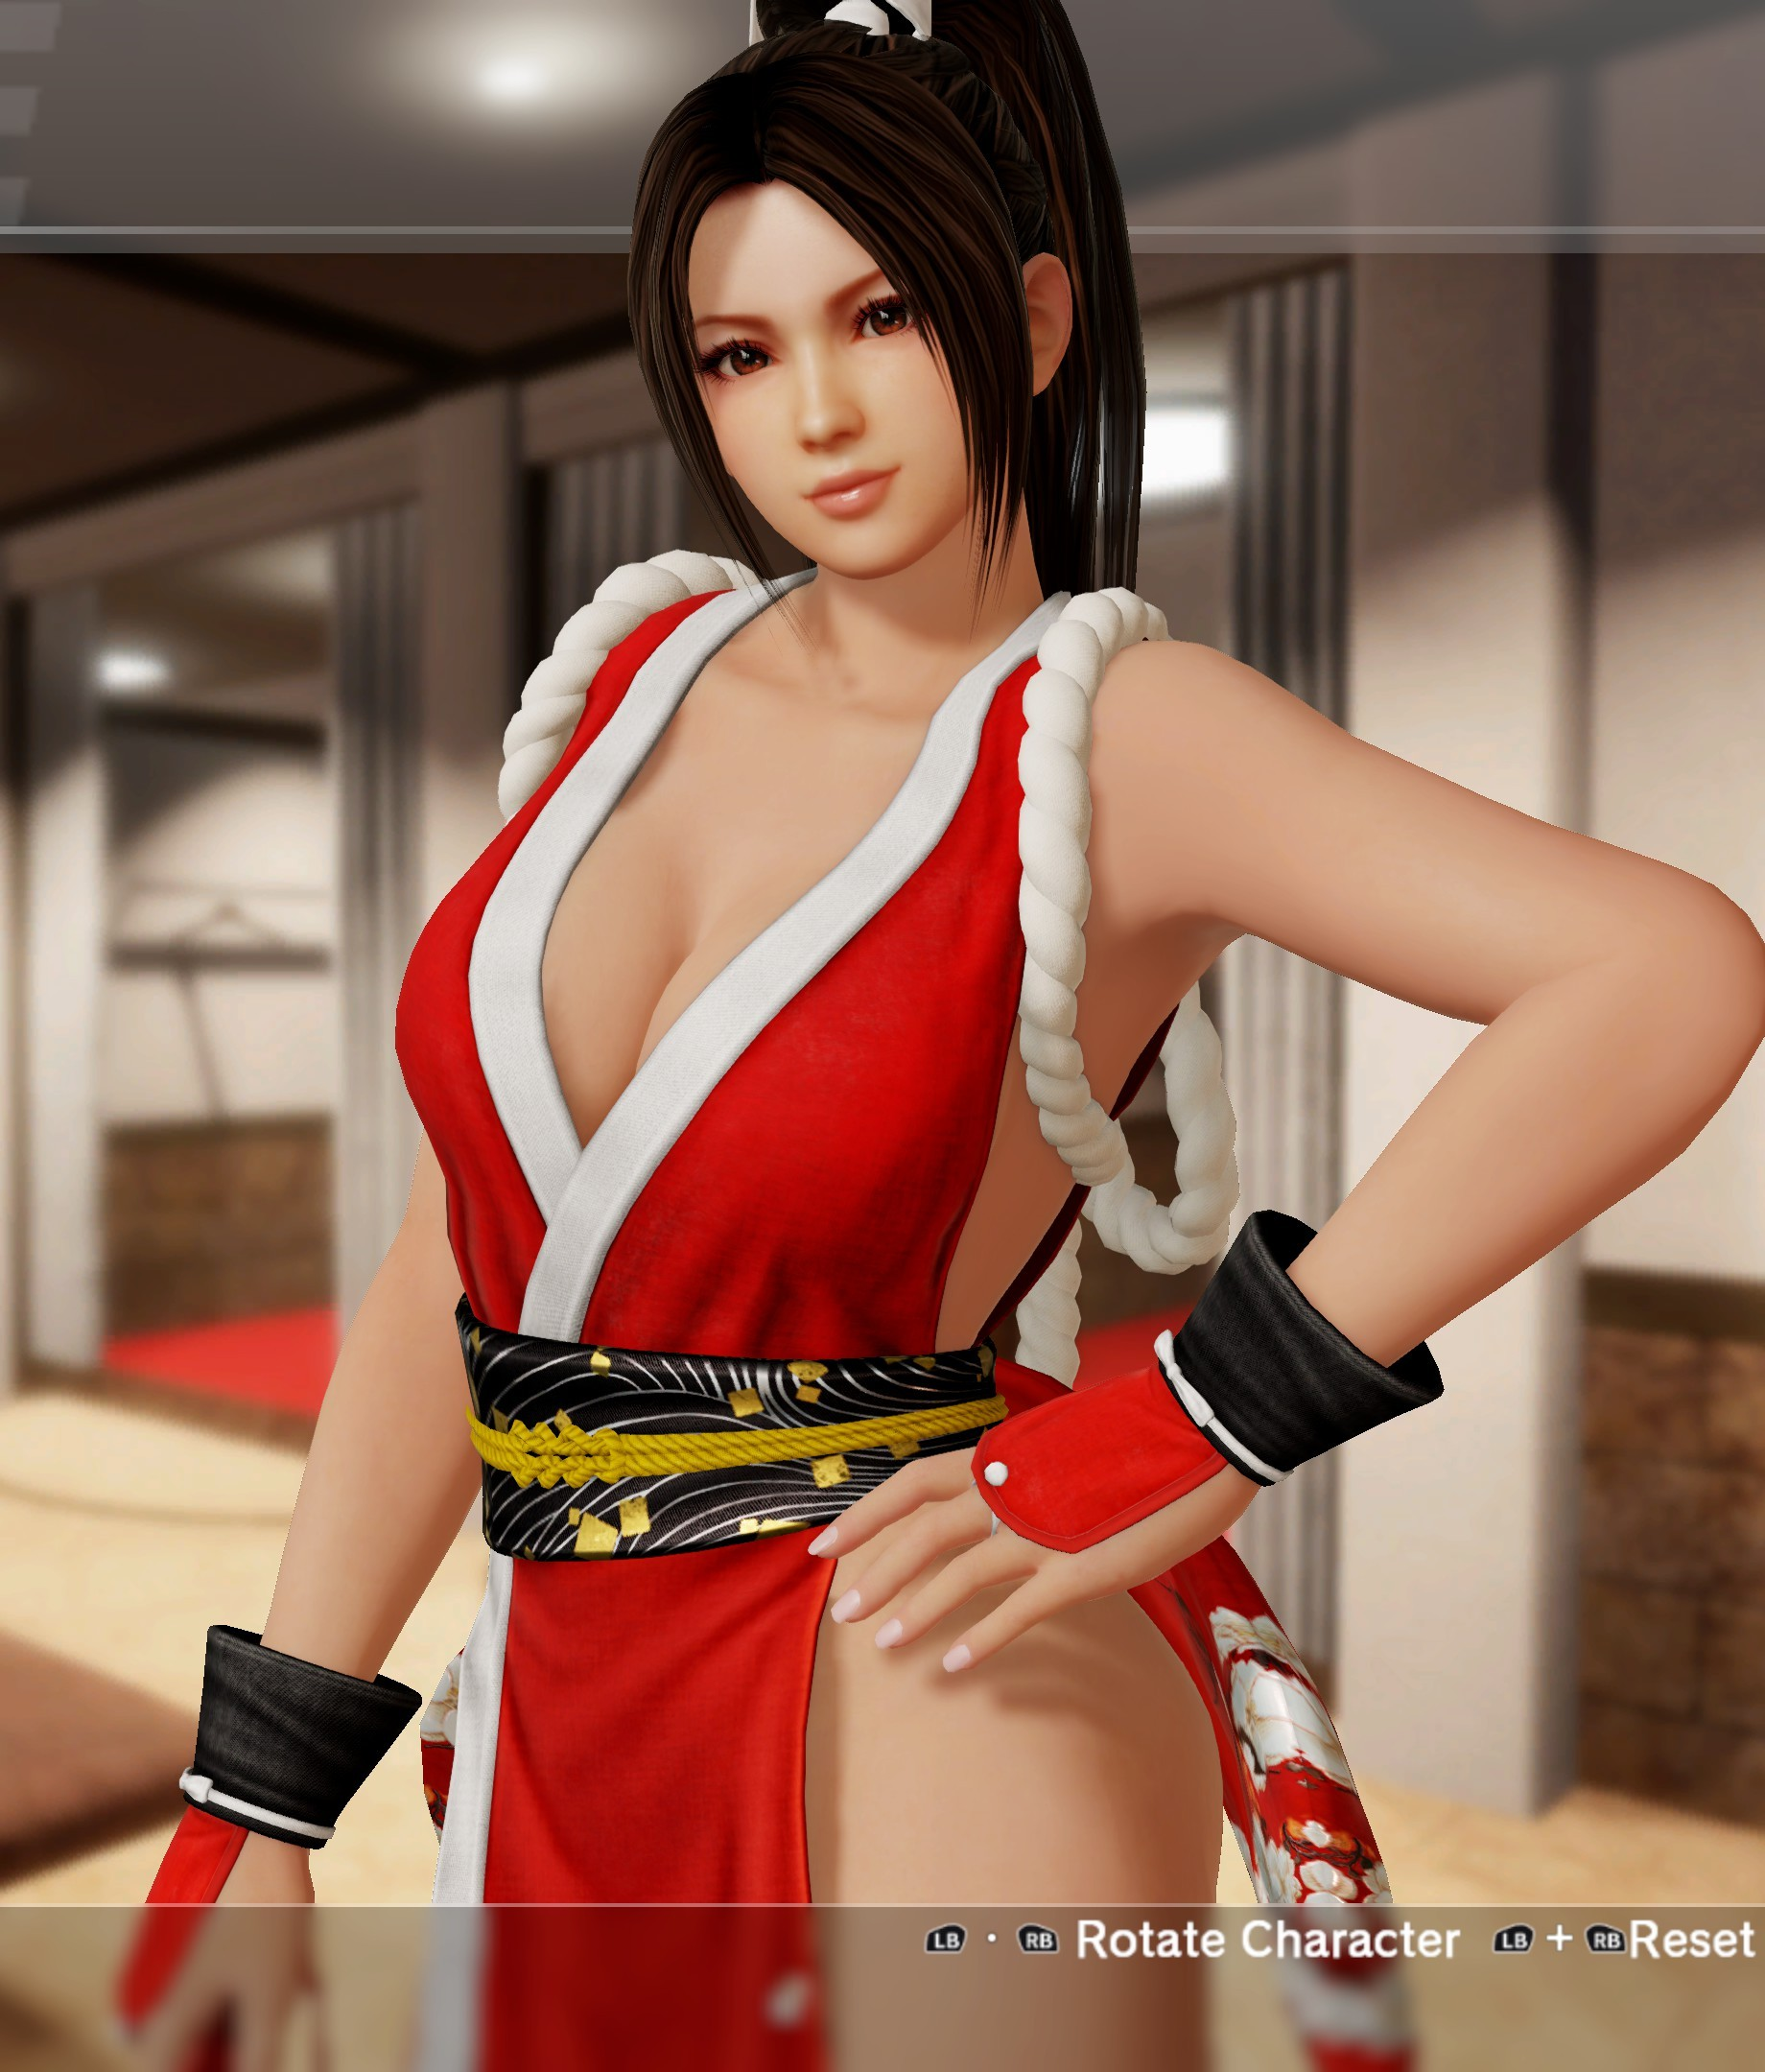 db6a135c51e1d DOA6 Mai C1, Costume 1 - Red-and-white uwagi with matching hand guards and  tabi-style boots, rope around her shoulders, and a single tassel, with  large red ...